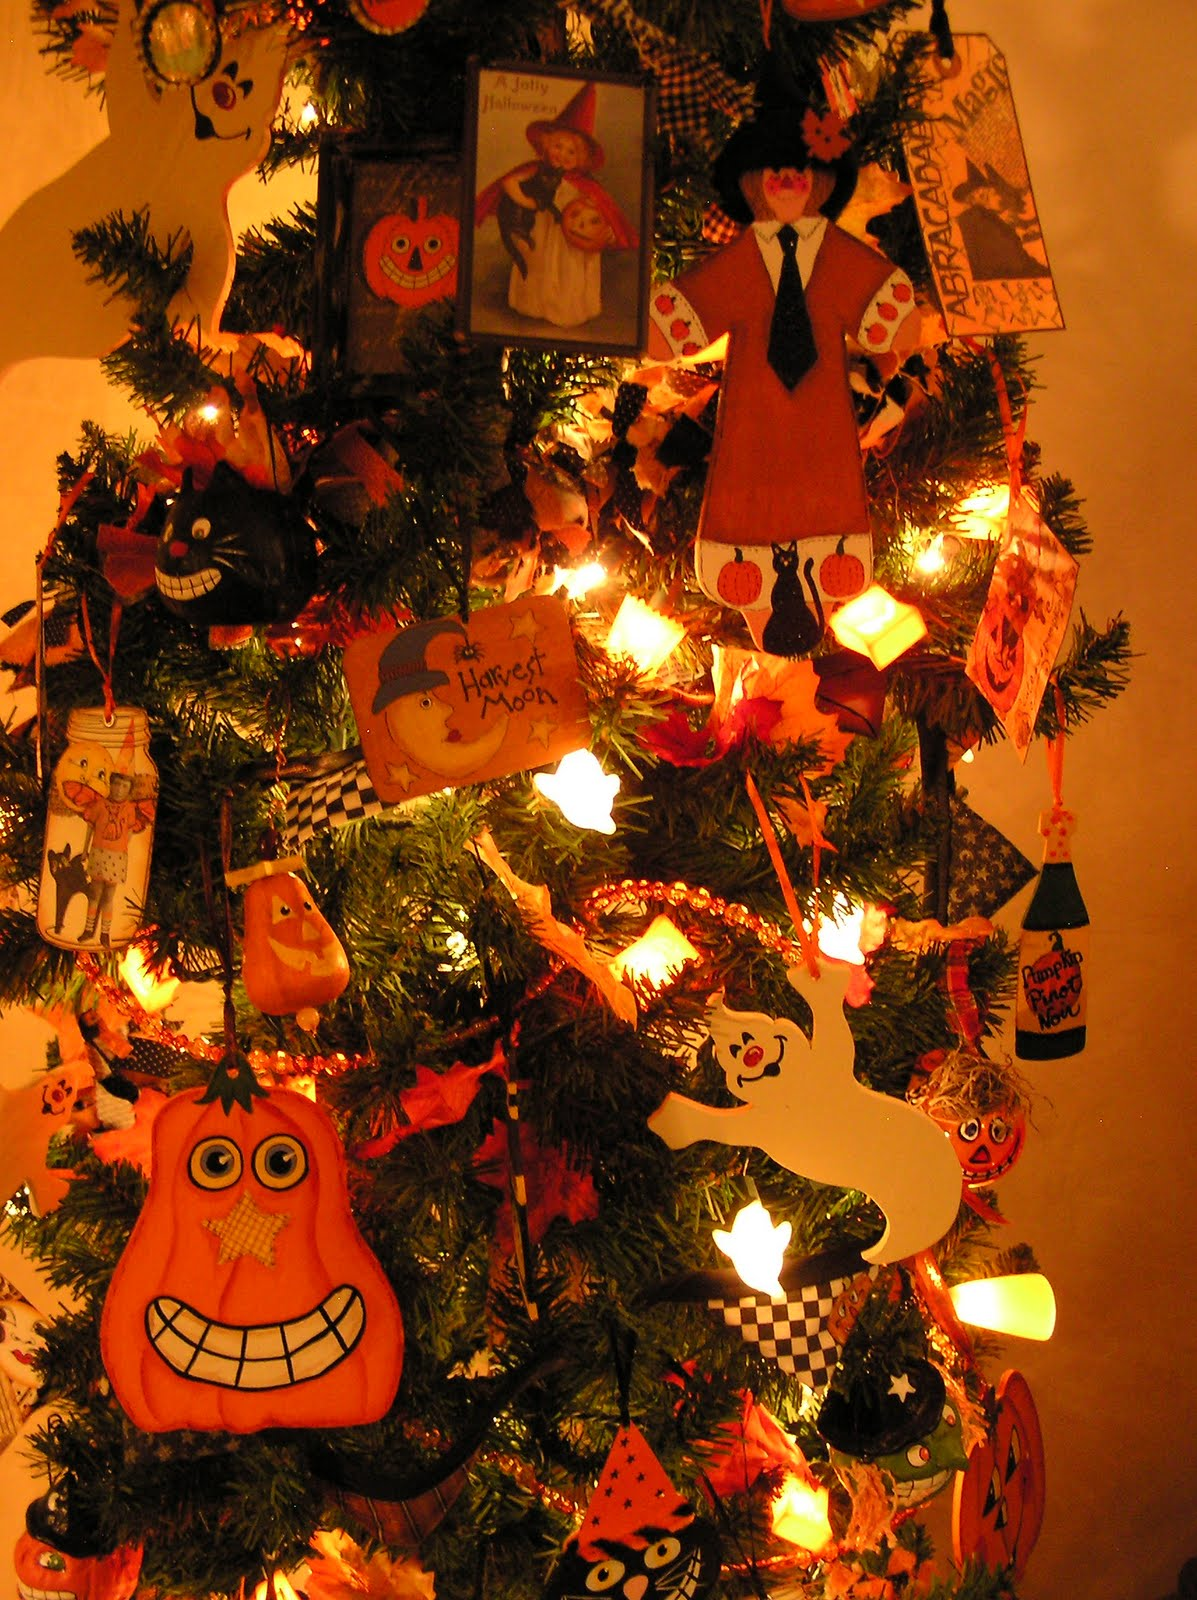 Halloween tree ornaments -  Source